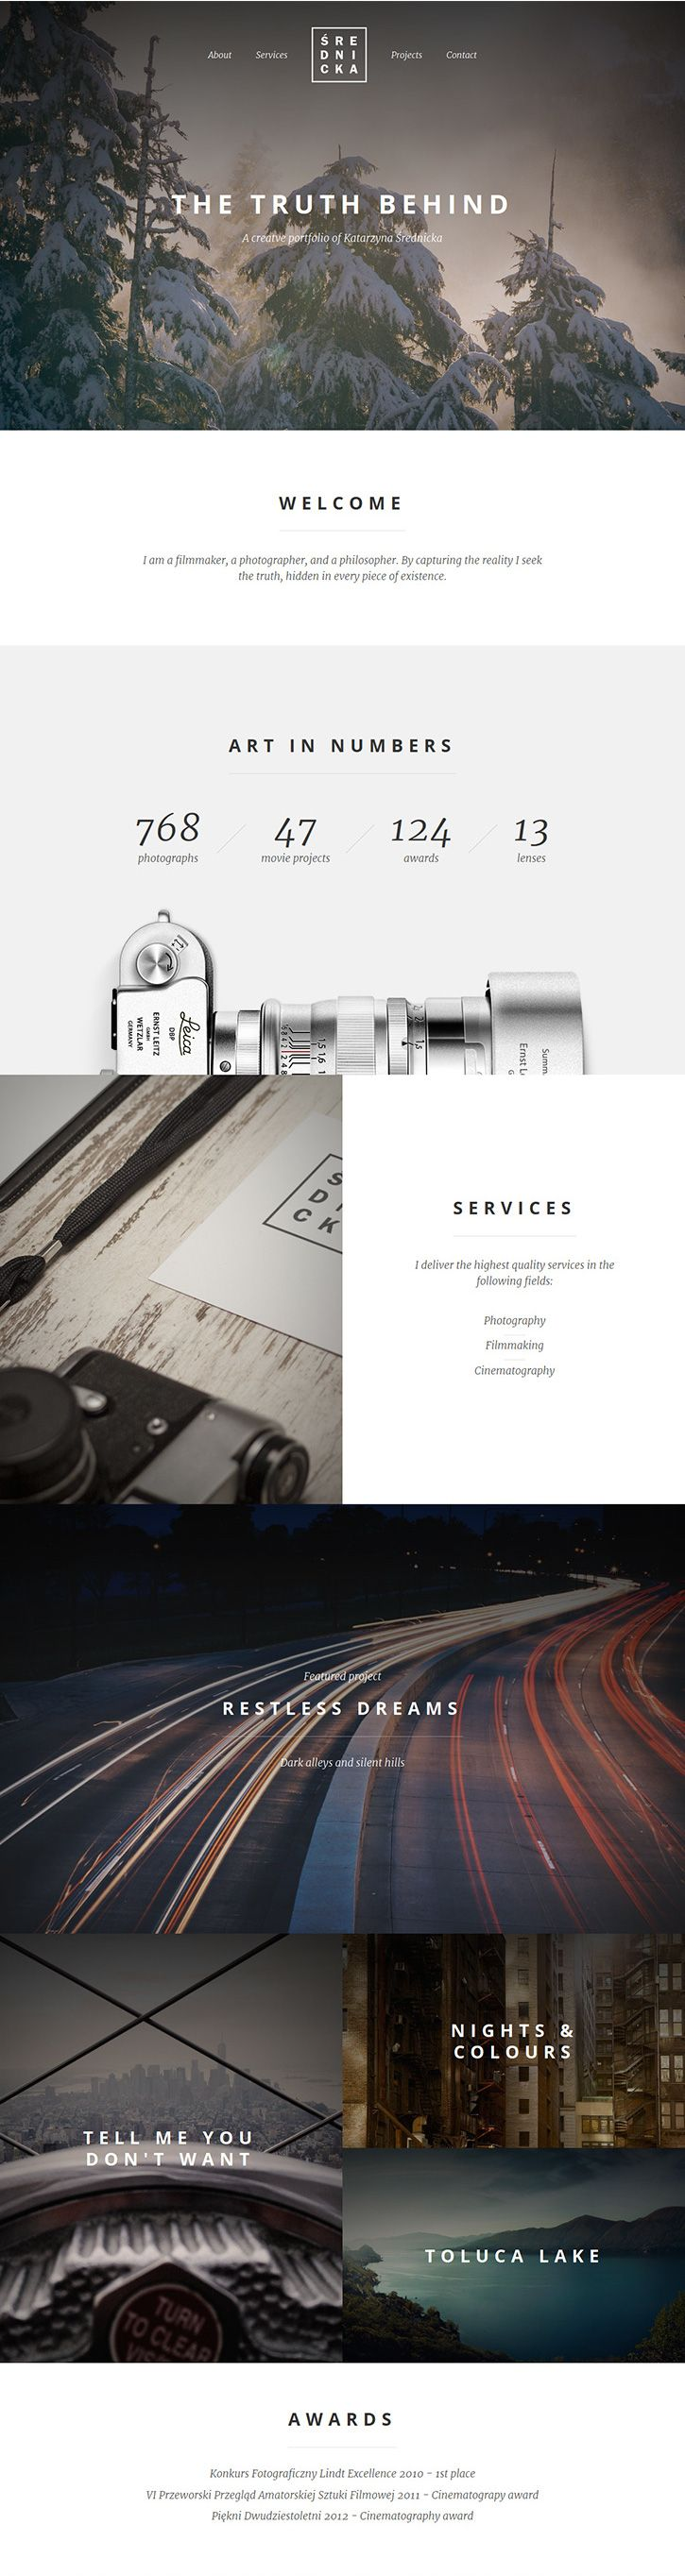 Unique Web Design, Srednicka #WebDesign #Design